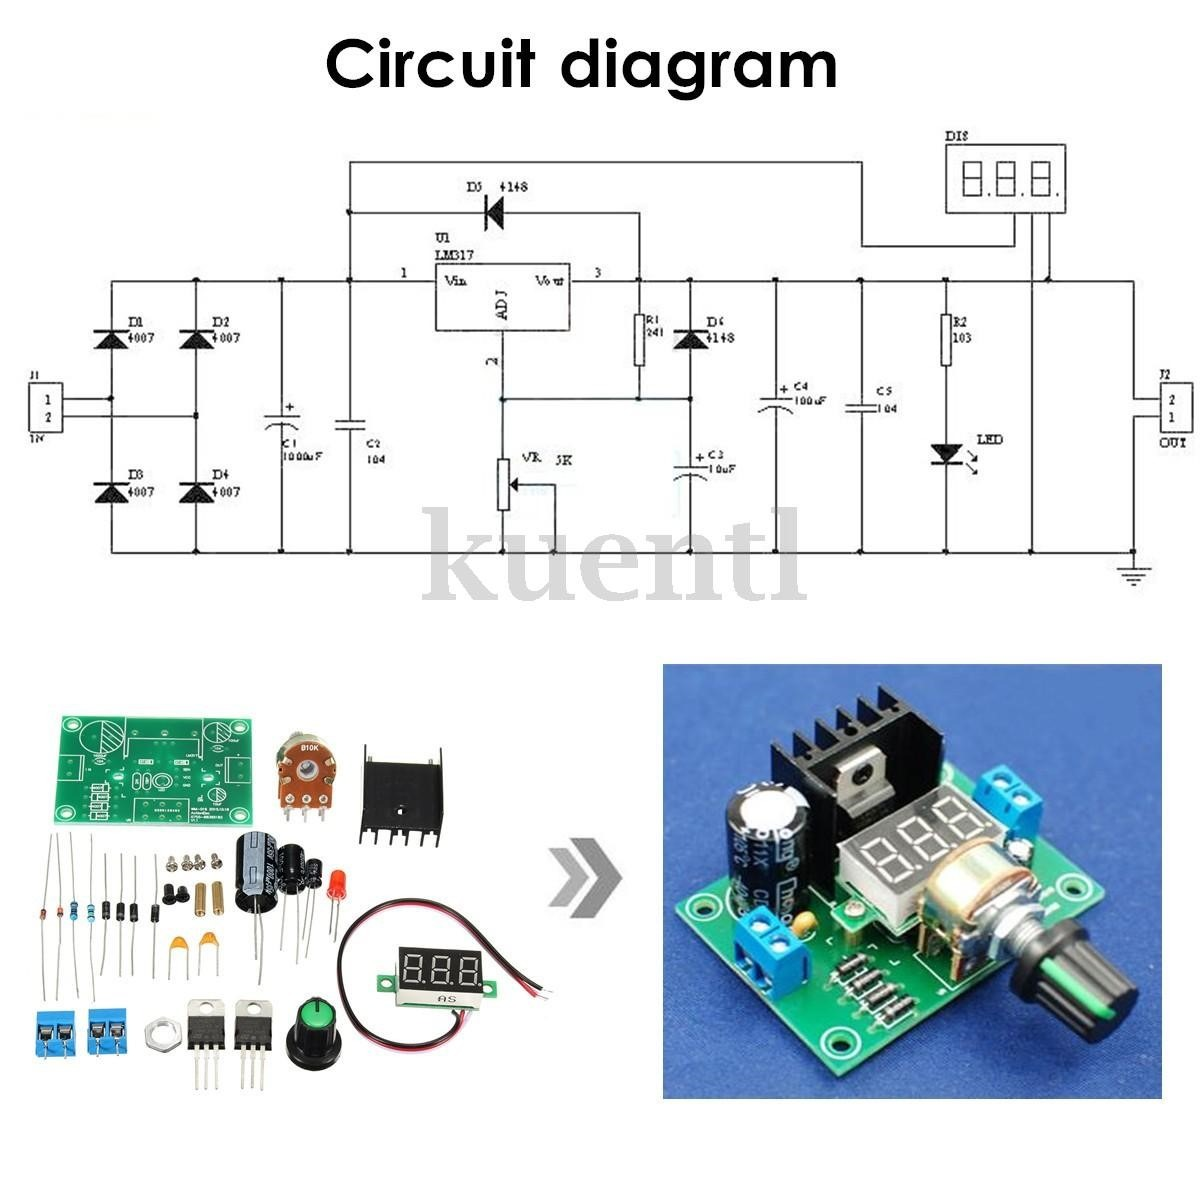 lm317 adjustable power supply schematic with Mpe 422141033 Kit Fuente De Voltage Regulable Variable Con Lm317 40vdc  Jm on MOSFET Based Joule Thief Steps Up Voltage besides Lm317 Regulator Ic Circuit Diagram in addition Simple 24v 20   Adjustable Power Supply Circuit further Lm358 together with Thread287505.